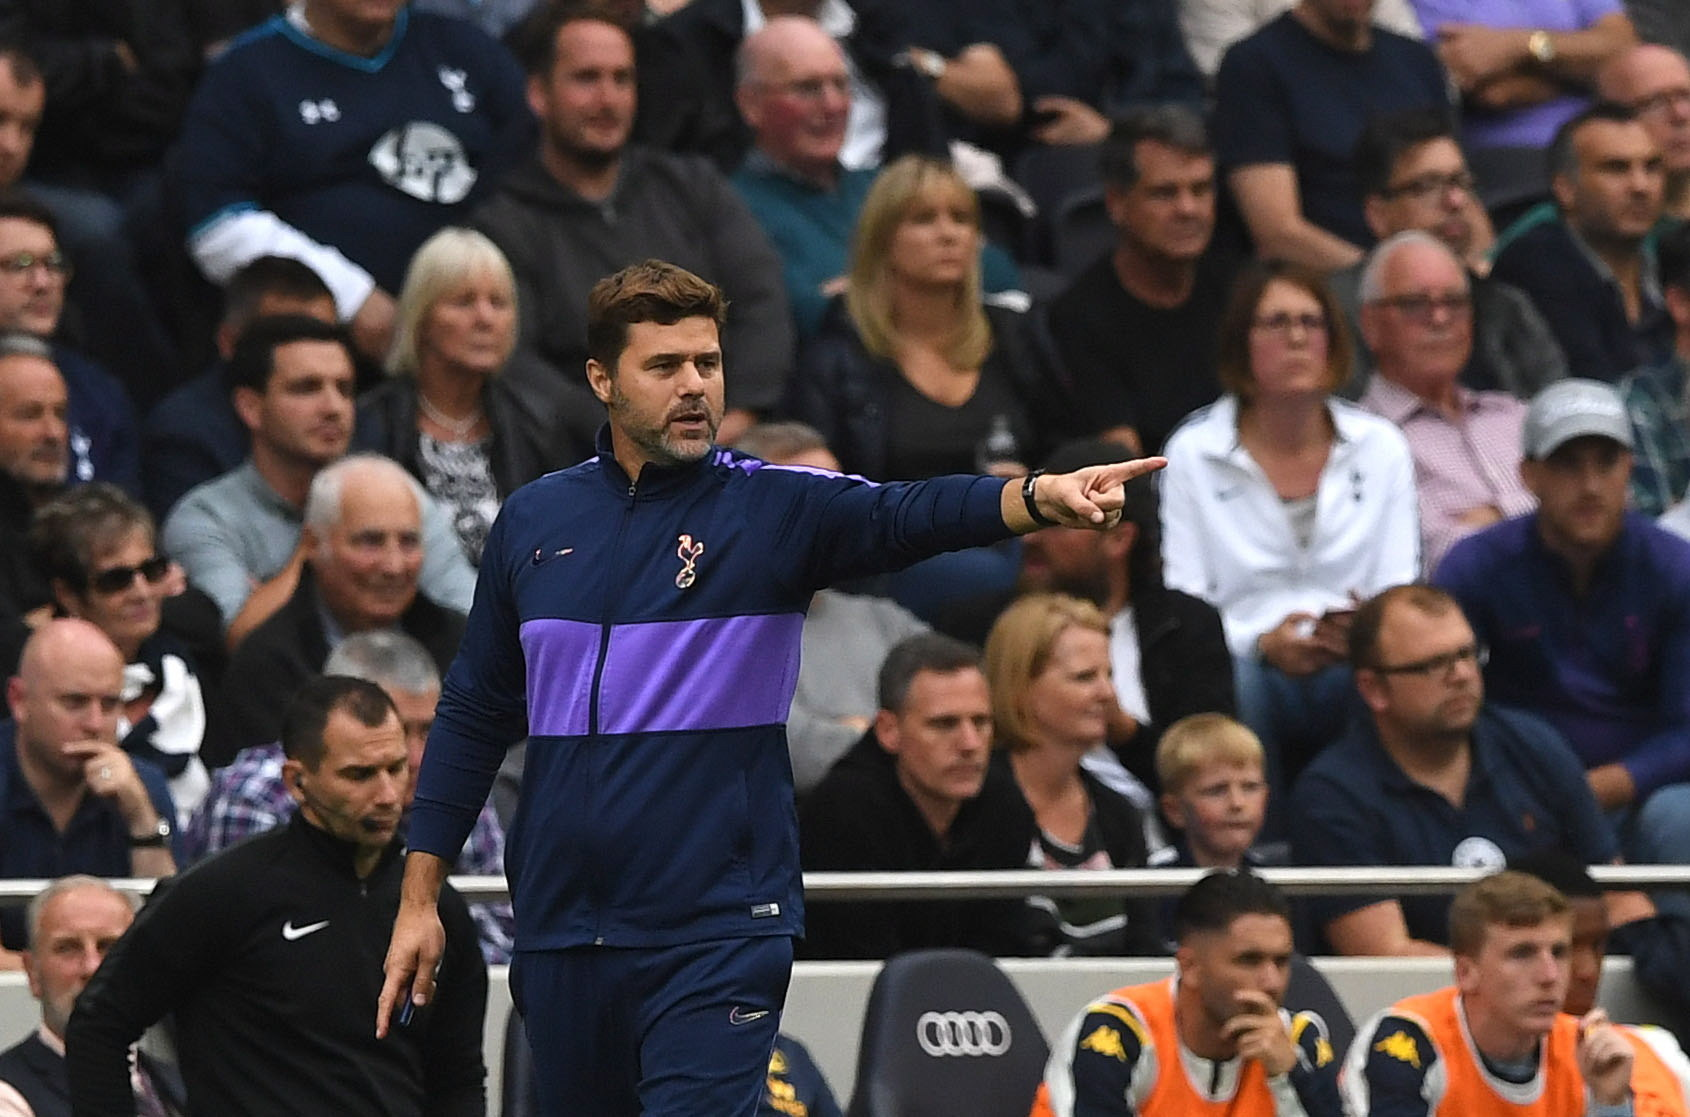 London (United Kingdom), 10/08/2019.- Tottenham Hotspurs manager Mauricio <HIT>Pochettino</HIT> during the English Premier League soccer match between Tottenham Hotspur and Aston Villa at the Tottenham Hotspur Stadium in London, Britain, 10 August 2019. (Reino Unido, Londres) EFE/EPA/NEIL HALL EDITORIAL USE ONLY. No use with unauthorized audio, video, data, fixture lists, club/league logos or live services. Online in-match use limited to 120 images, no video emulation. No use in betting, games or single club/league/player publications